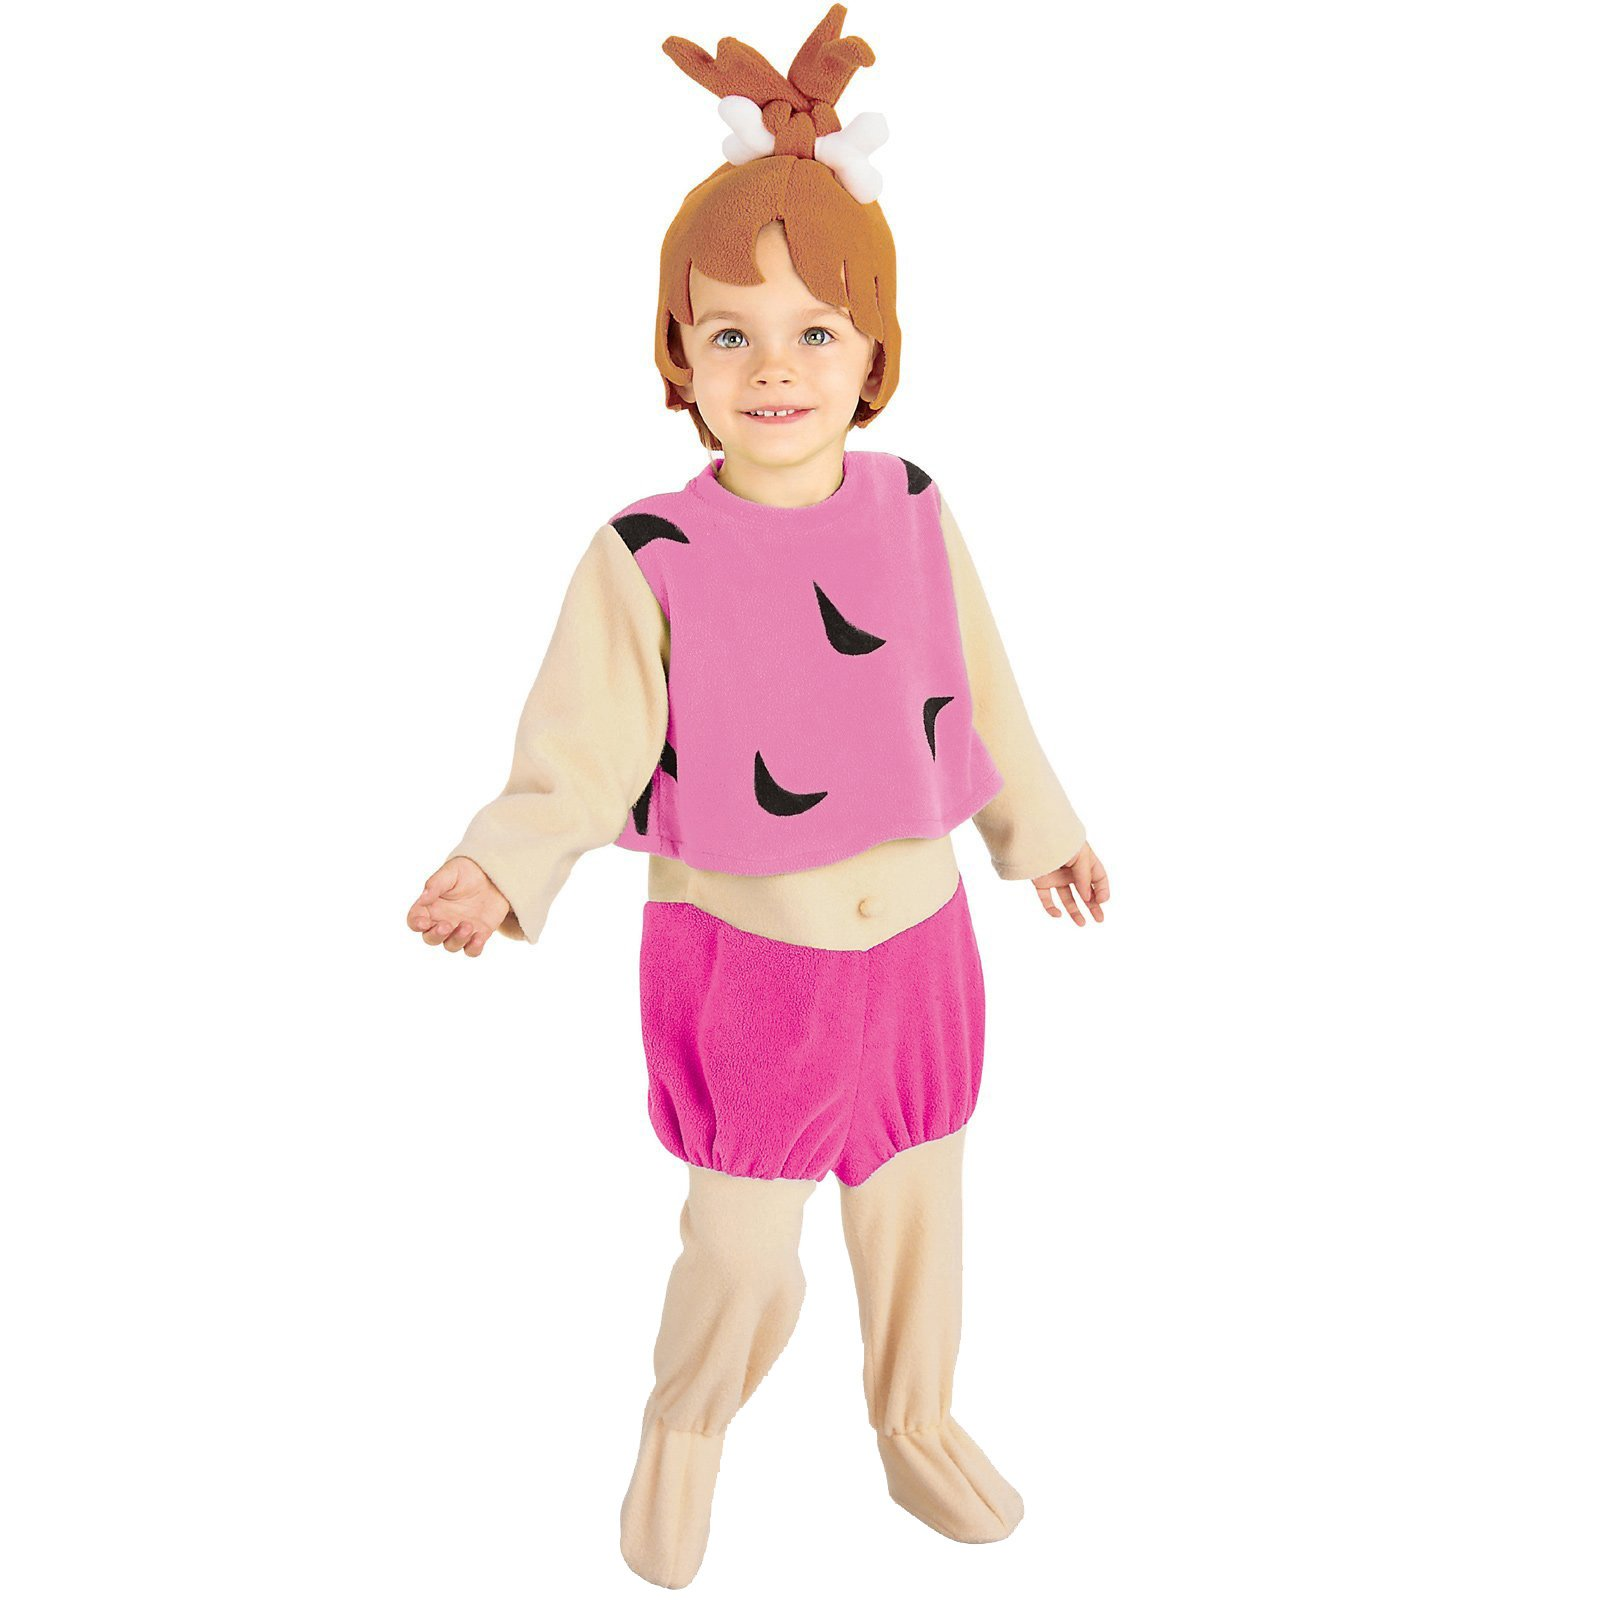 The Flintstones Pebbles Toddler / Child Costume